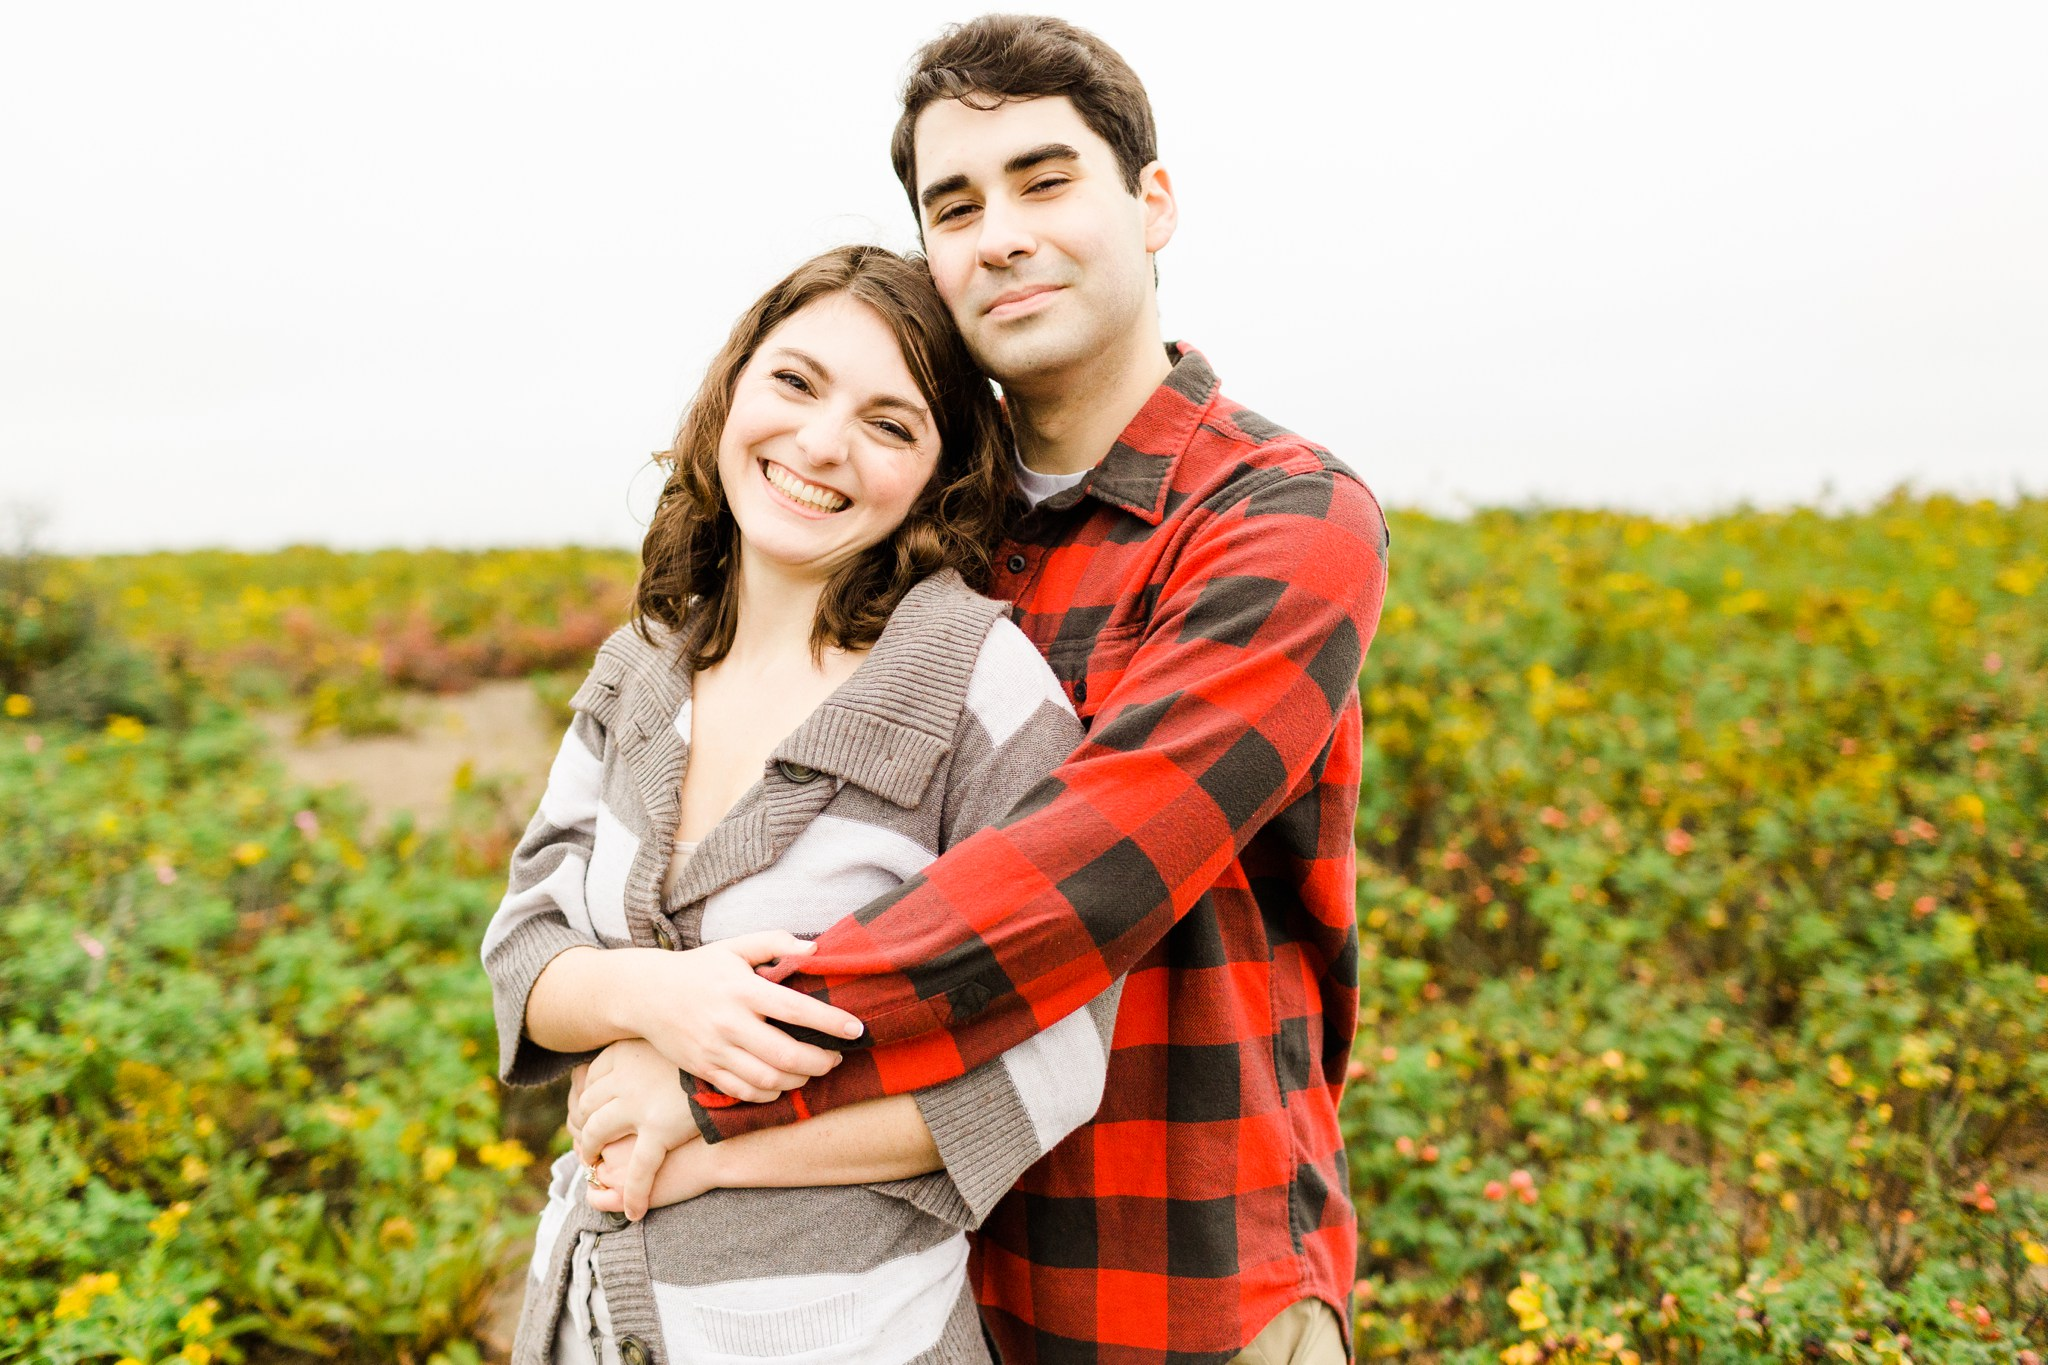 swampscott_beach_engagement_session_photos_00007.JPG